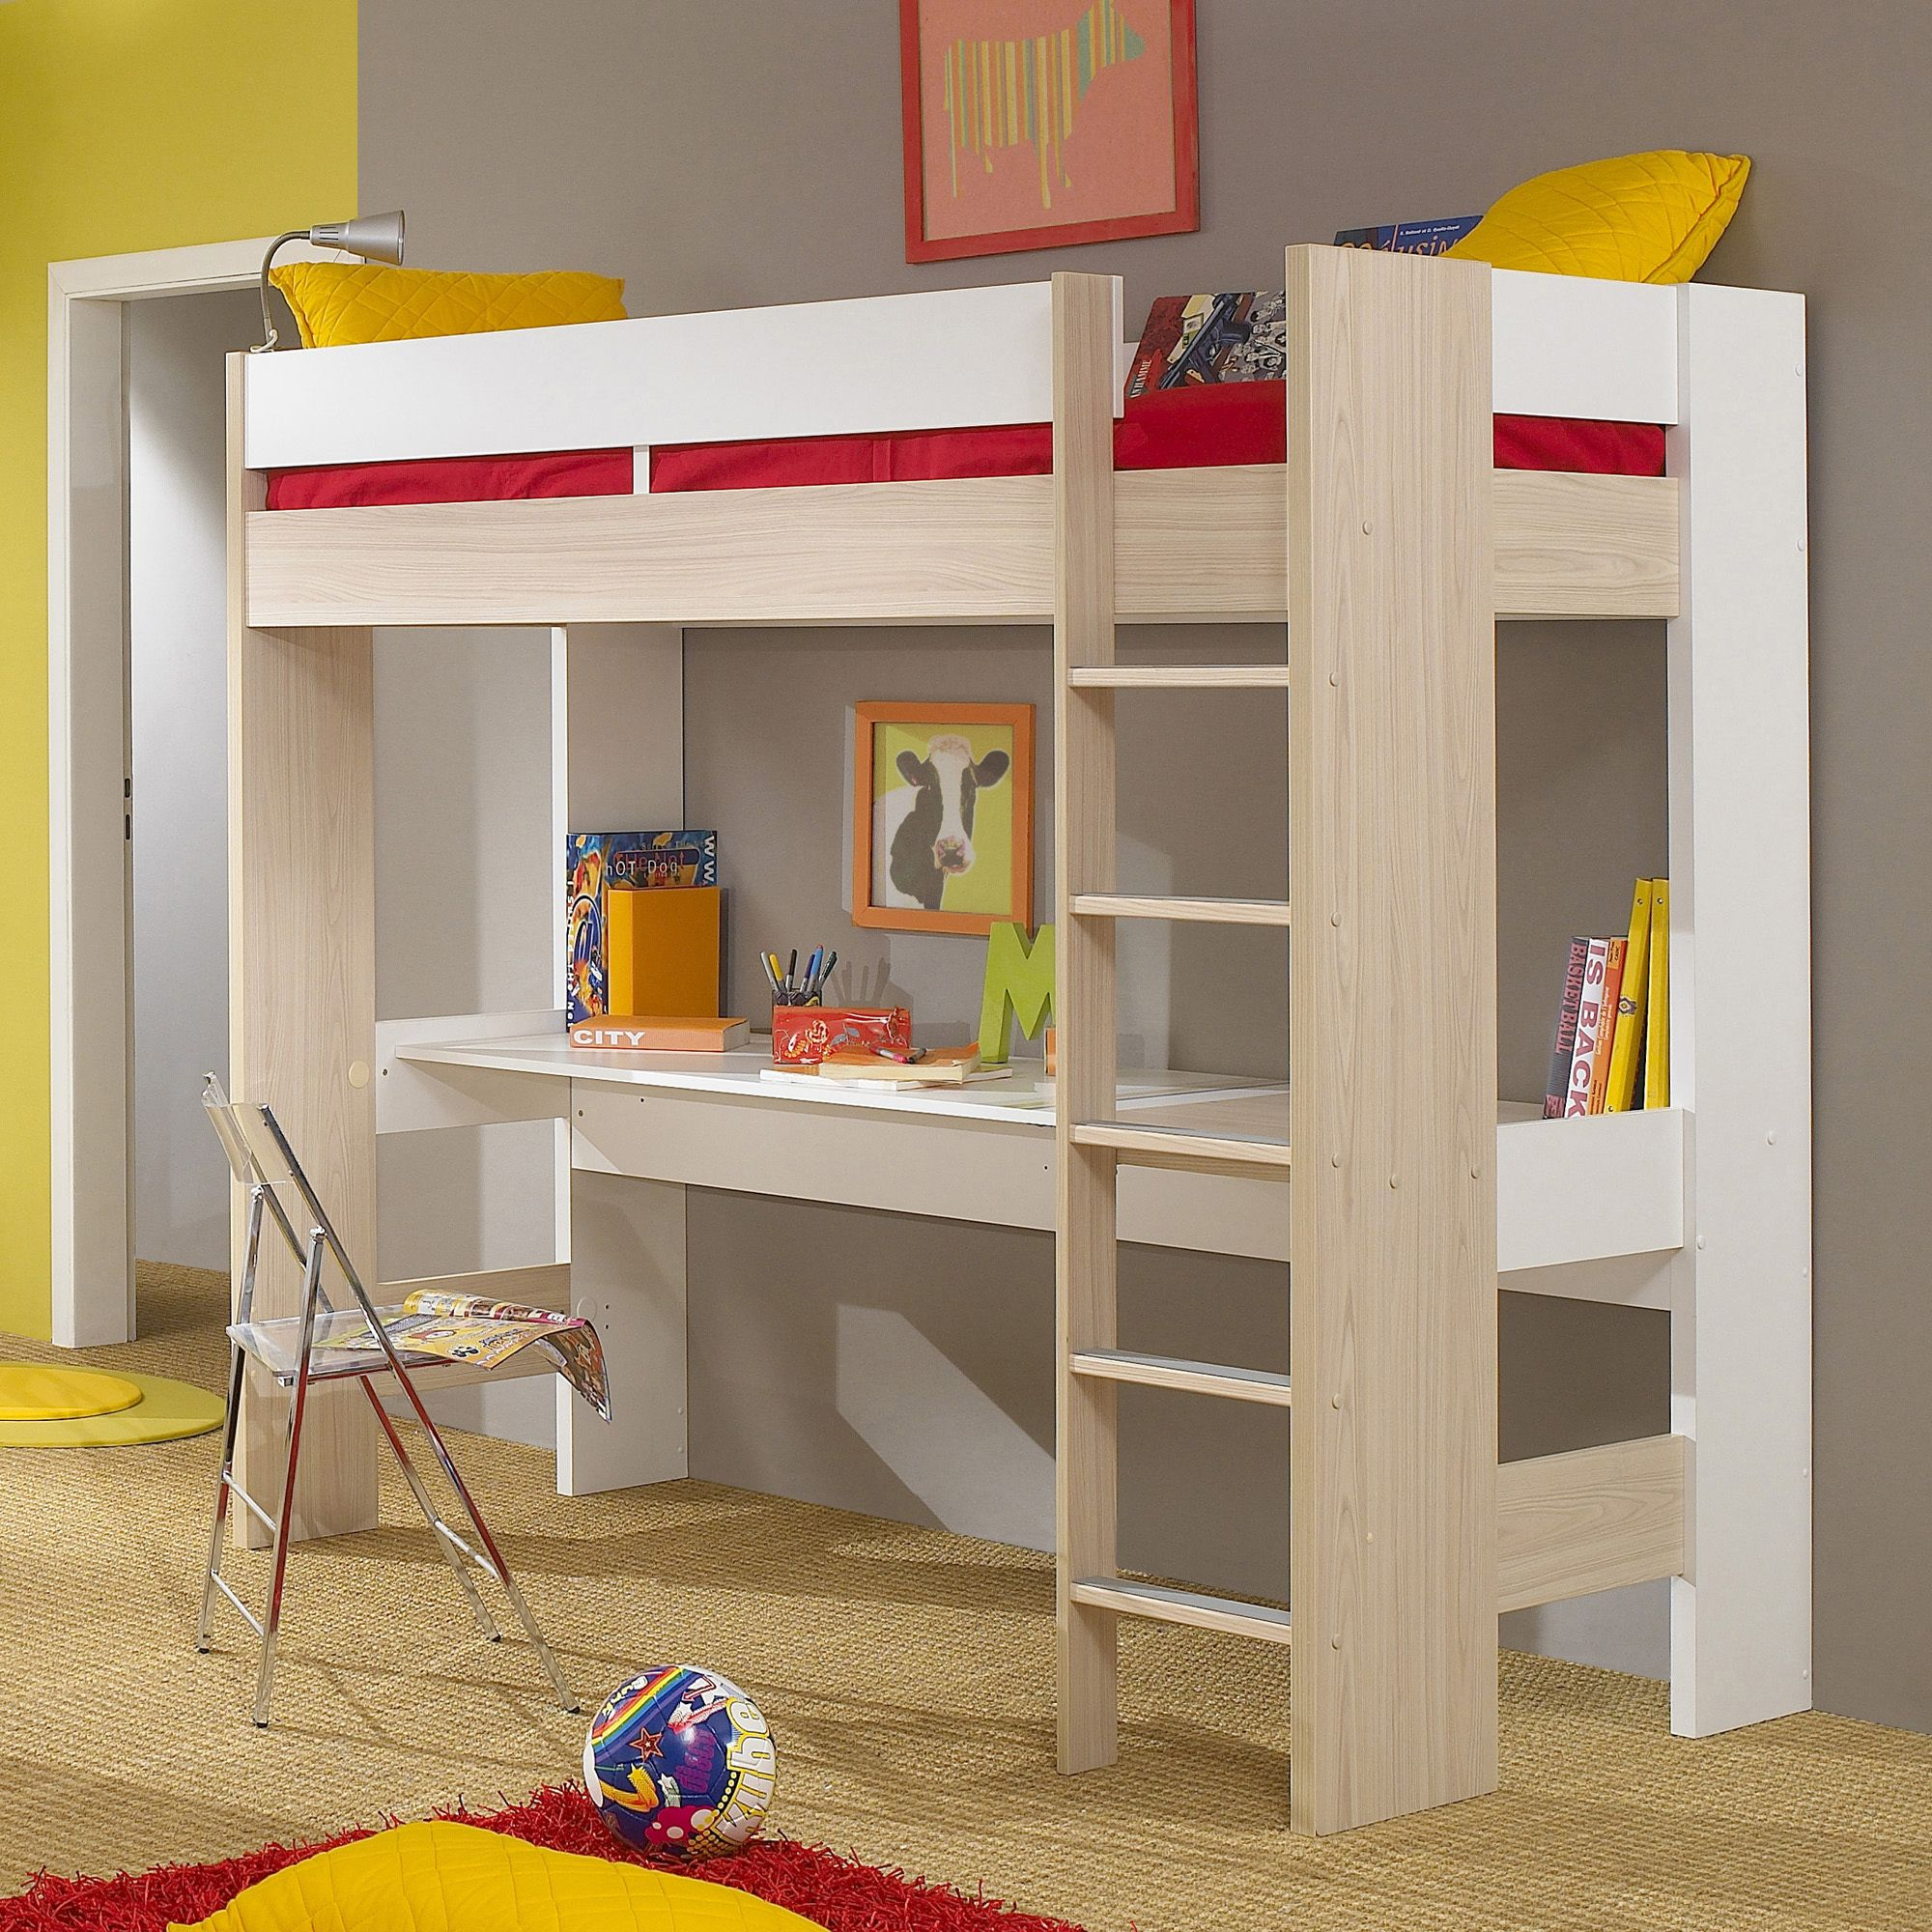 gautier mezzanine largo loft bunk bed with desk closet. Black Bedroom Furniture Sets. Home Design Ideas